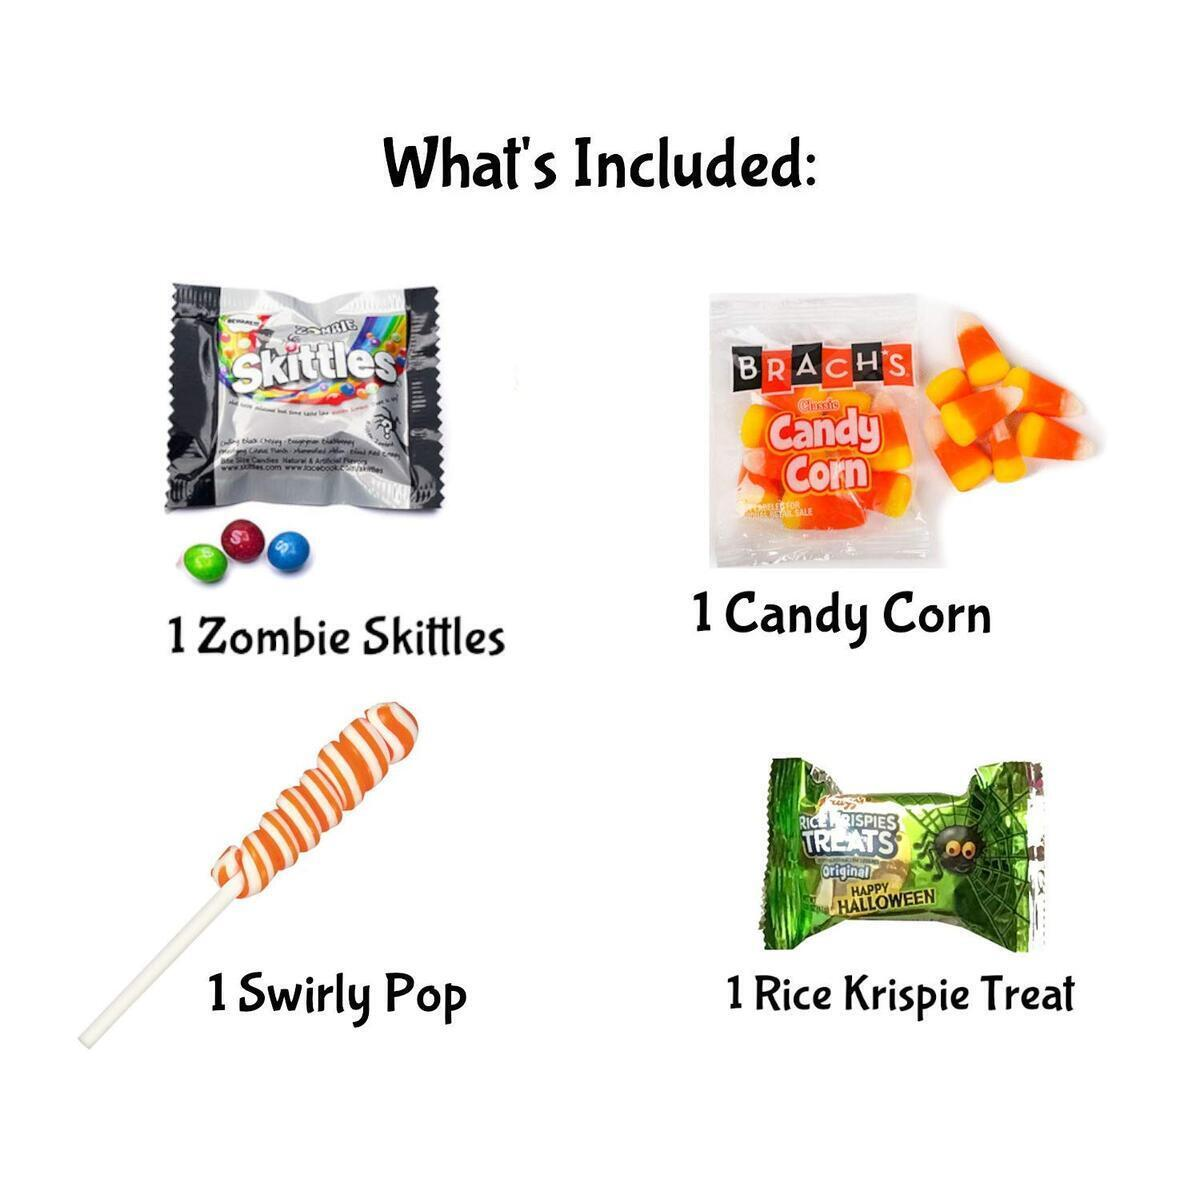 Halloween Movie Night Spooky Basket With Candy Plus Free Redbox Movie Rental Code Gift Card (Halloween Popcorn Gift - Individual #3)